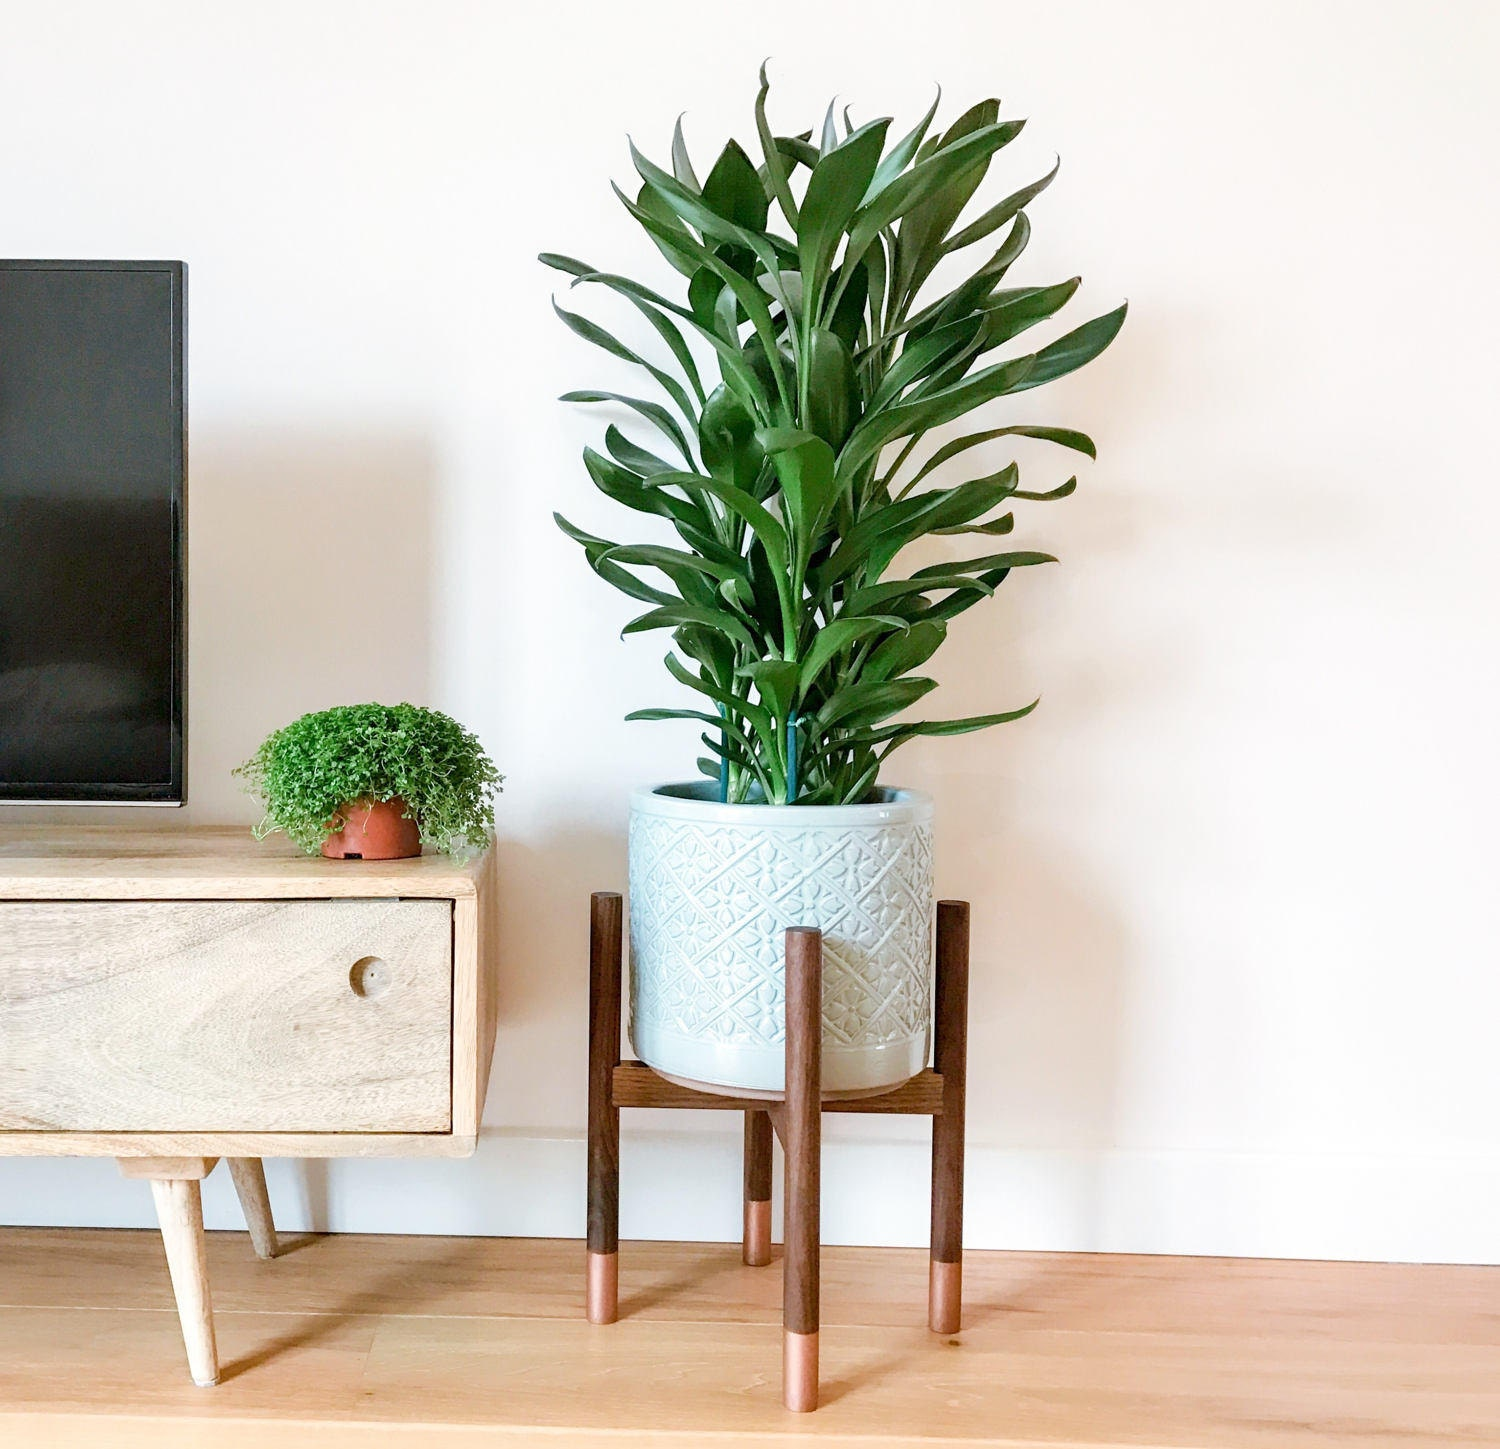 Walnut hardwood midcentury plant stand. Beautiful cool hand crafted design.